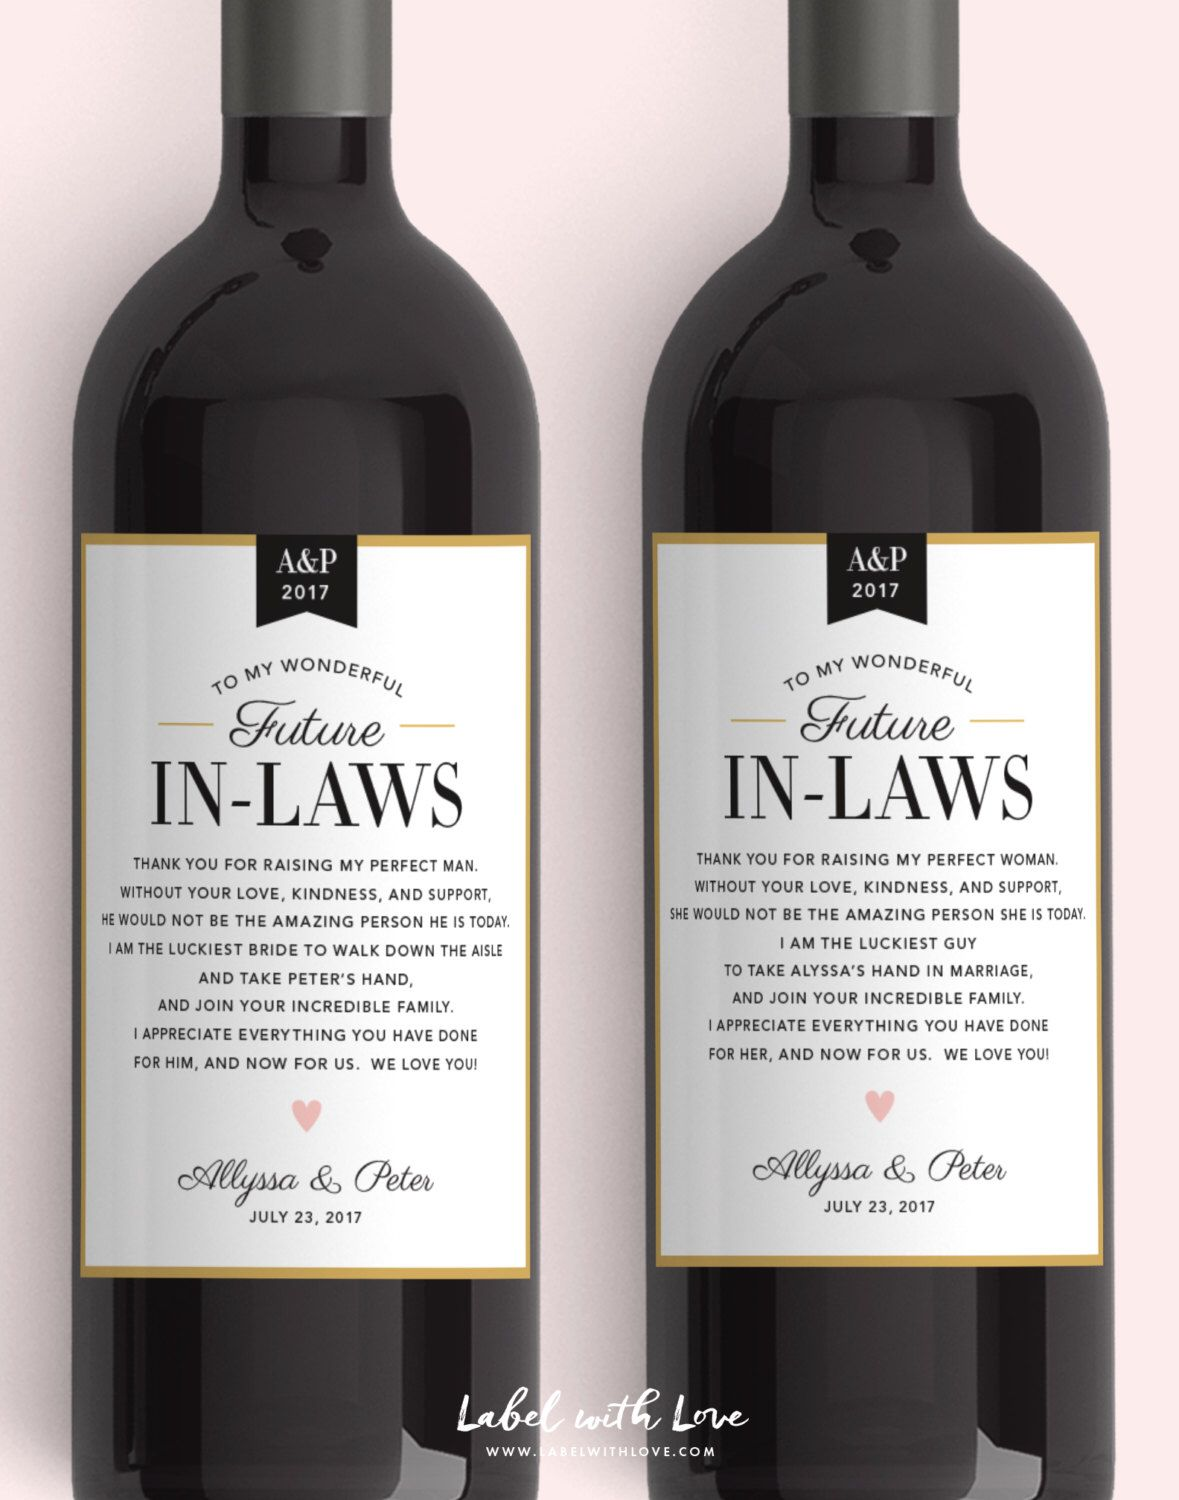 Lovely Far Law Pinterest Gifts Far Bride In Law Wine Labels Wedding Thank You Gift Parents Gifts Law Uk Bride Groom Law Wine Labels Wedding Thank You Gift Parents